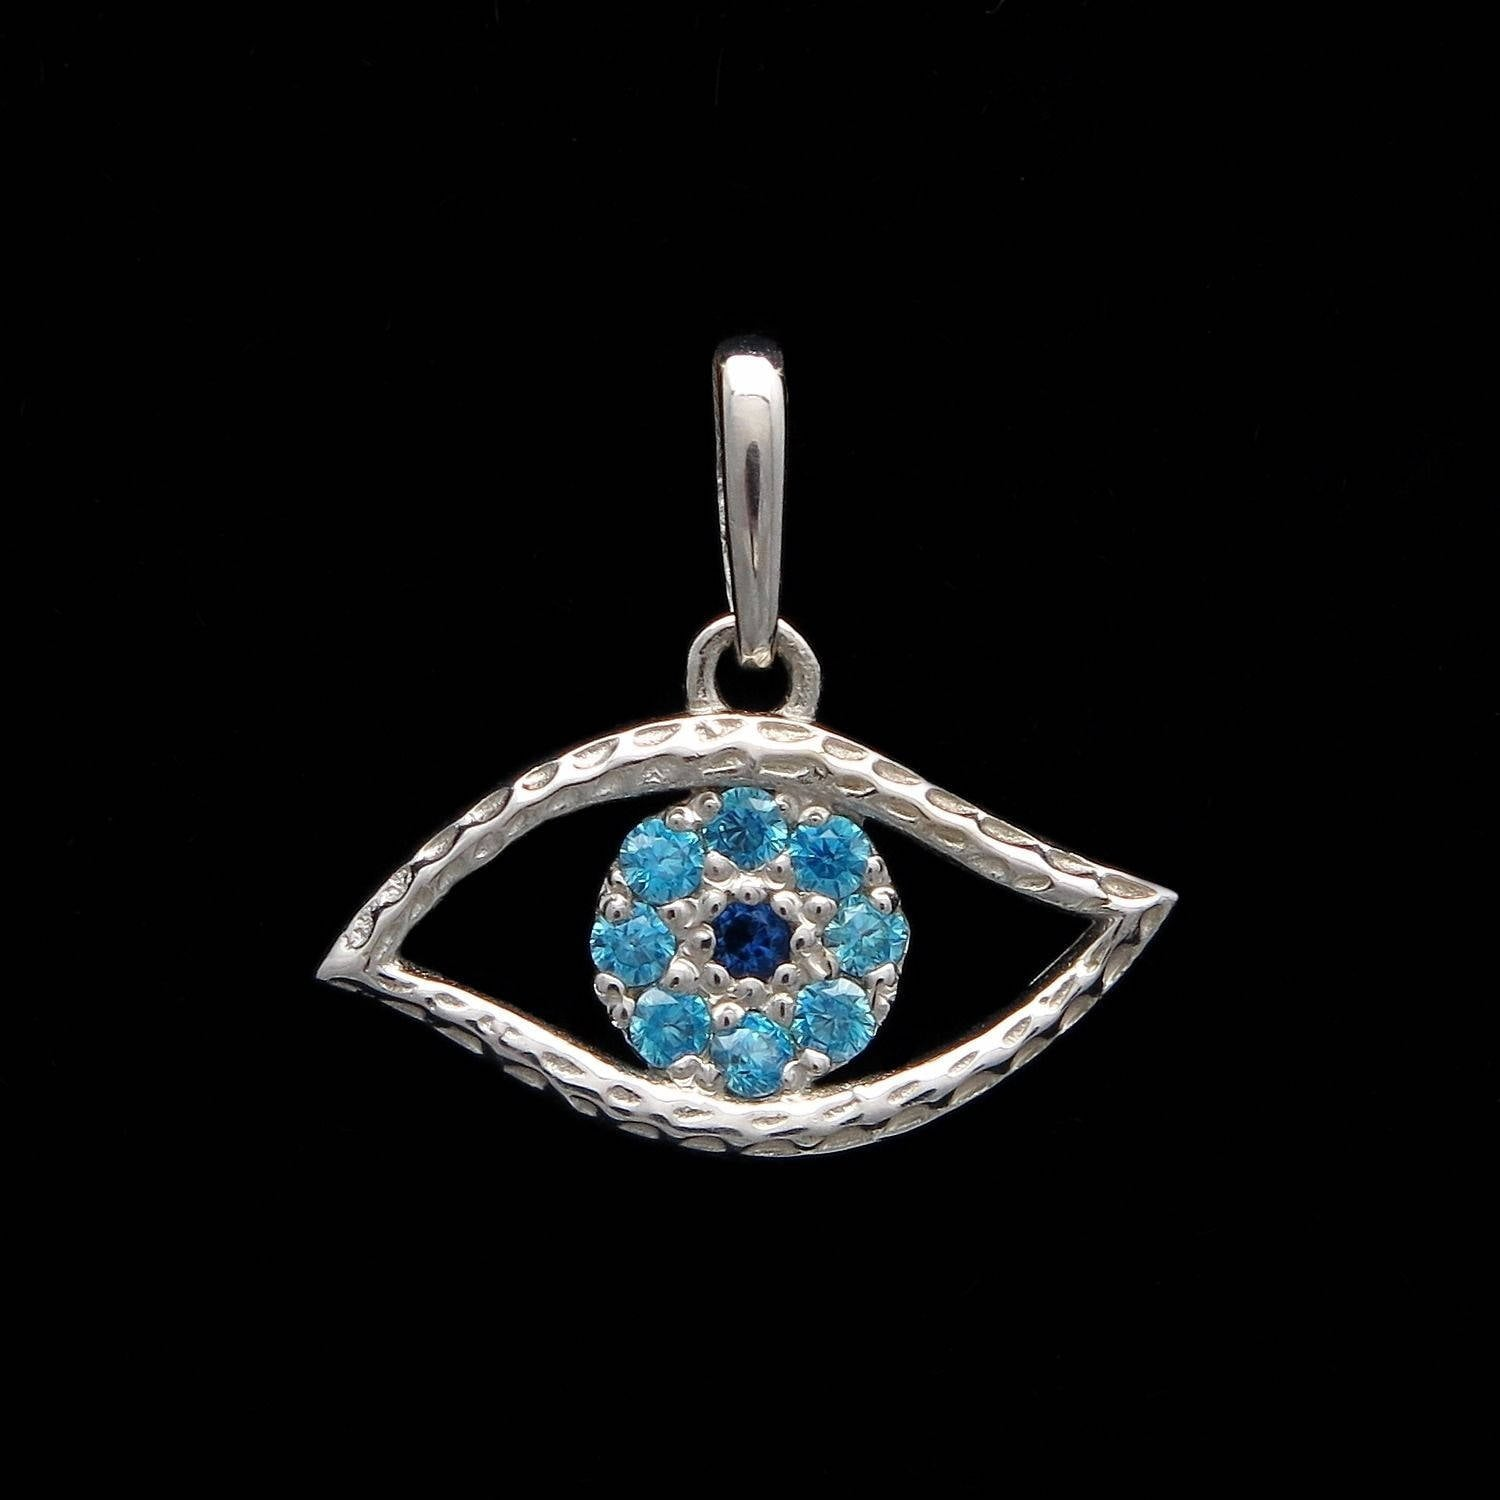 Evil eye pendant 14k white gold charm created aquamarine blue evil eye pendant 14k white gold charm created aquamarine blue sapphire charm aloadofball Image collections